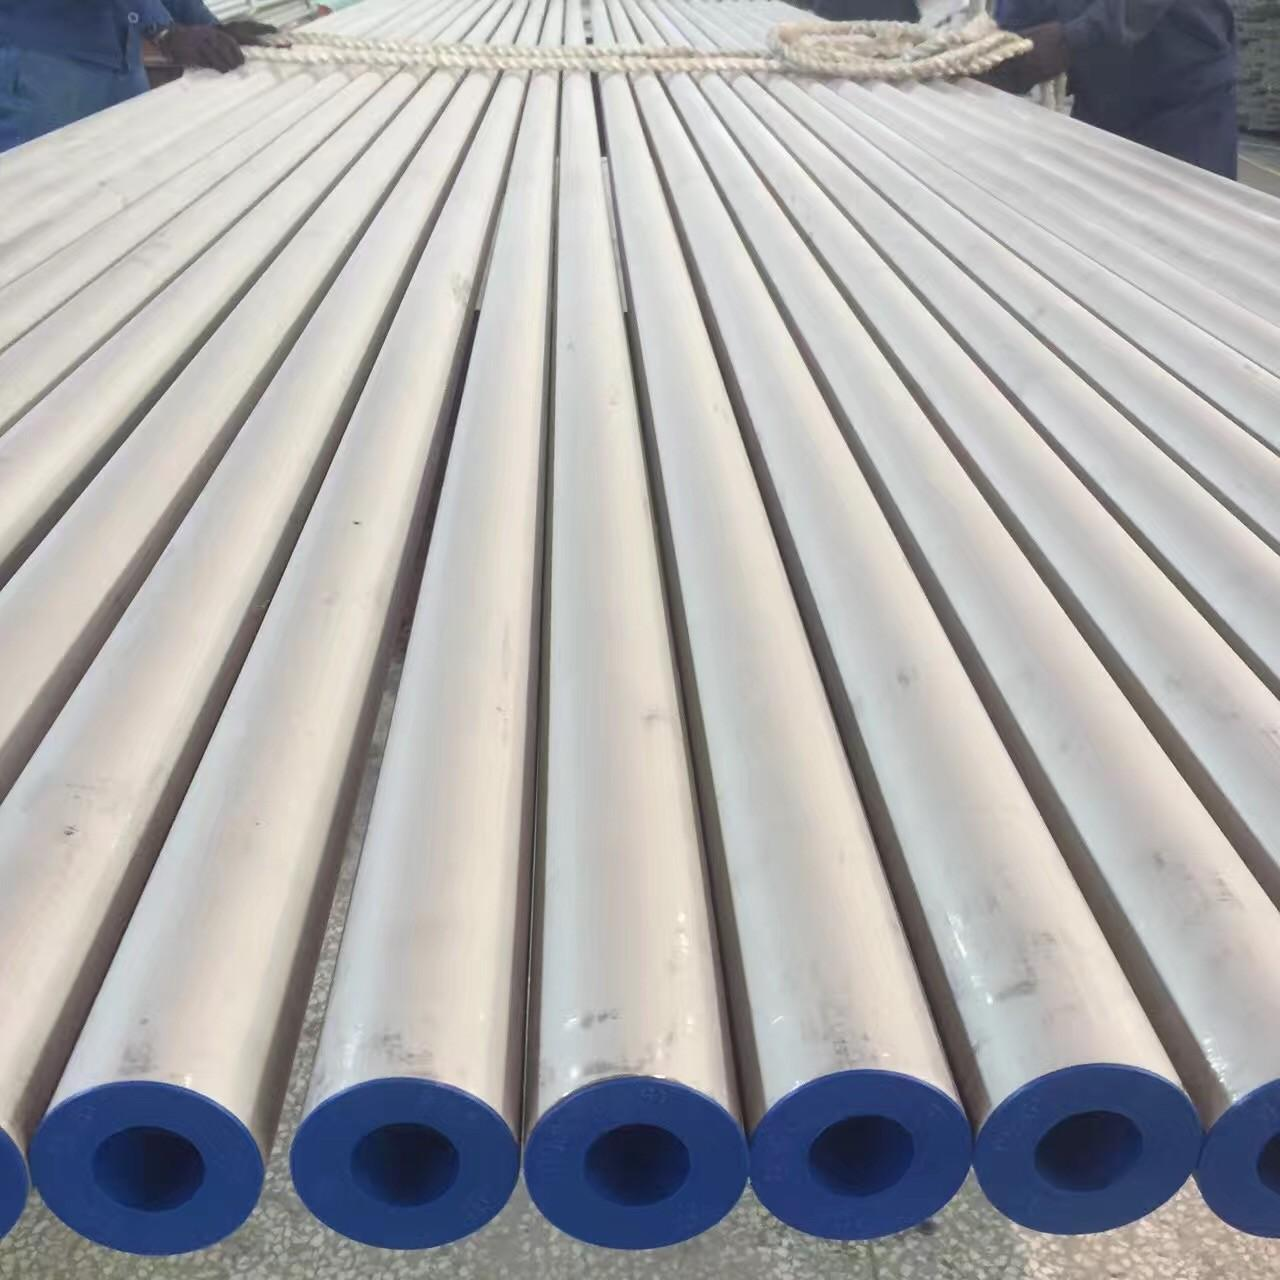 Buy cheap Stainless Steel Seamless Pipe, GOST9941-81/GOST 9940-81 03Х17Н14М3, 08Х18Н10, 08Х17Н13М2Т. 12Х18Н10Т, 08Х18Н12Б, product